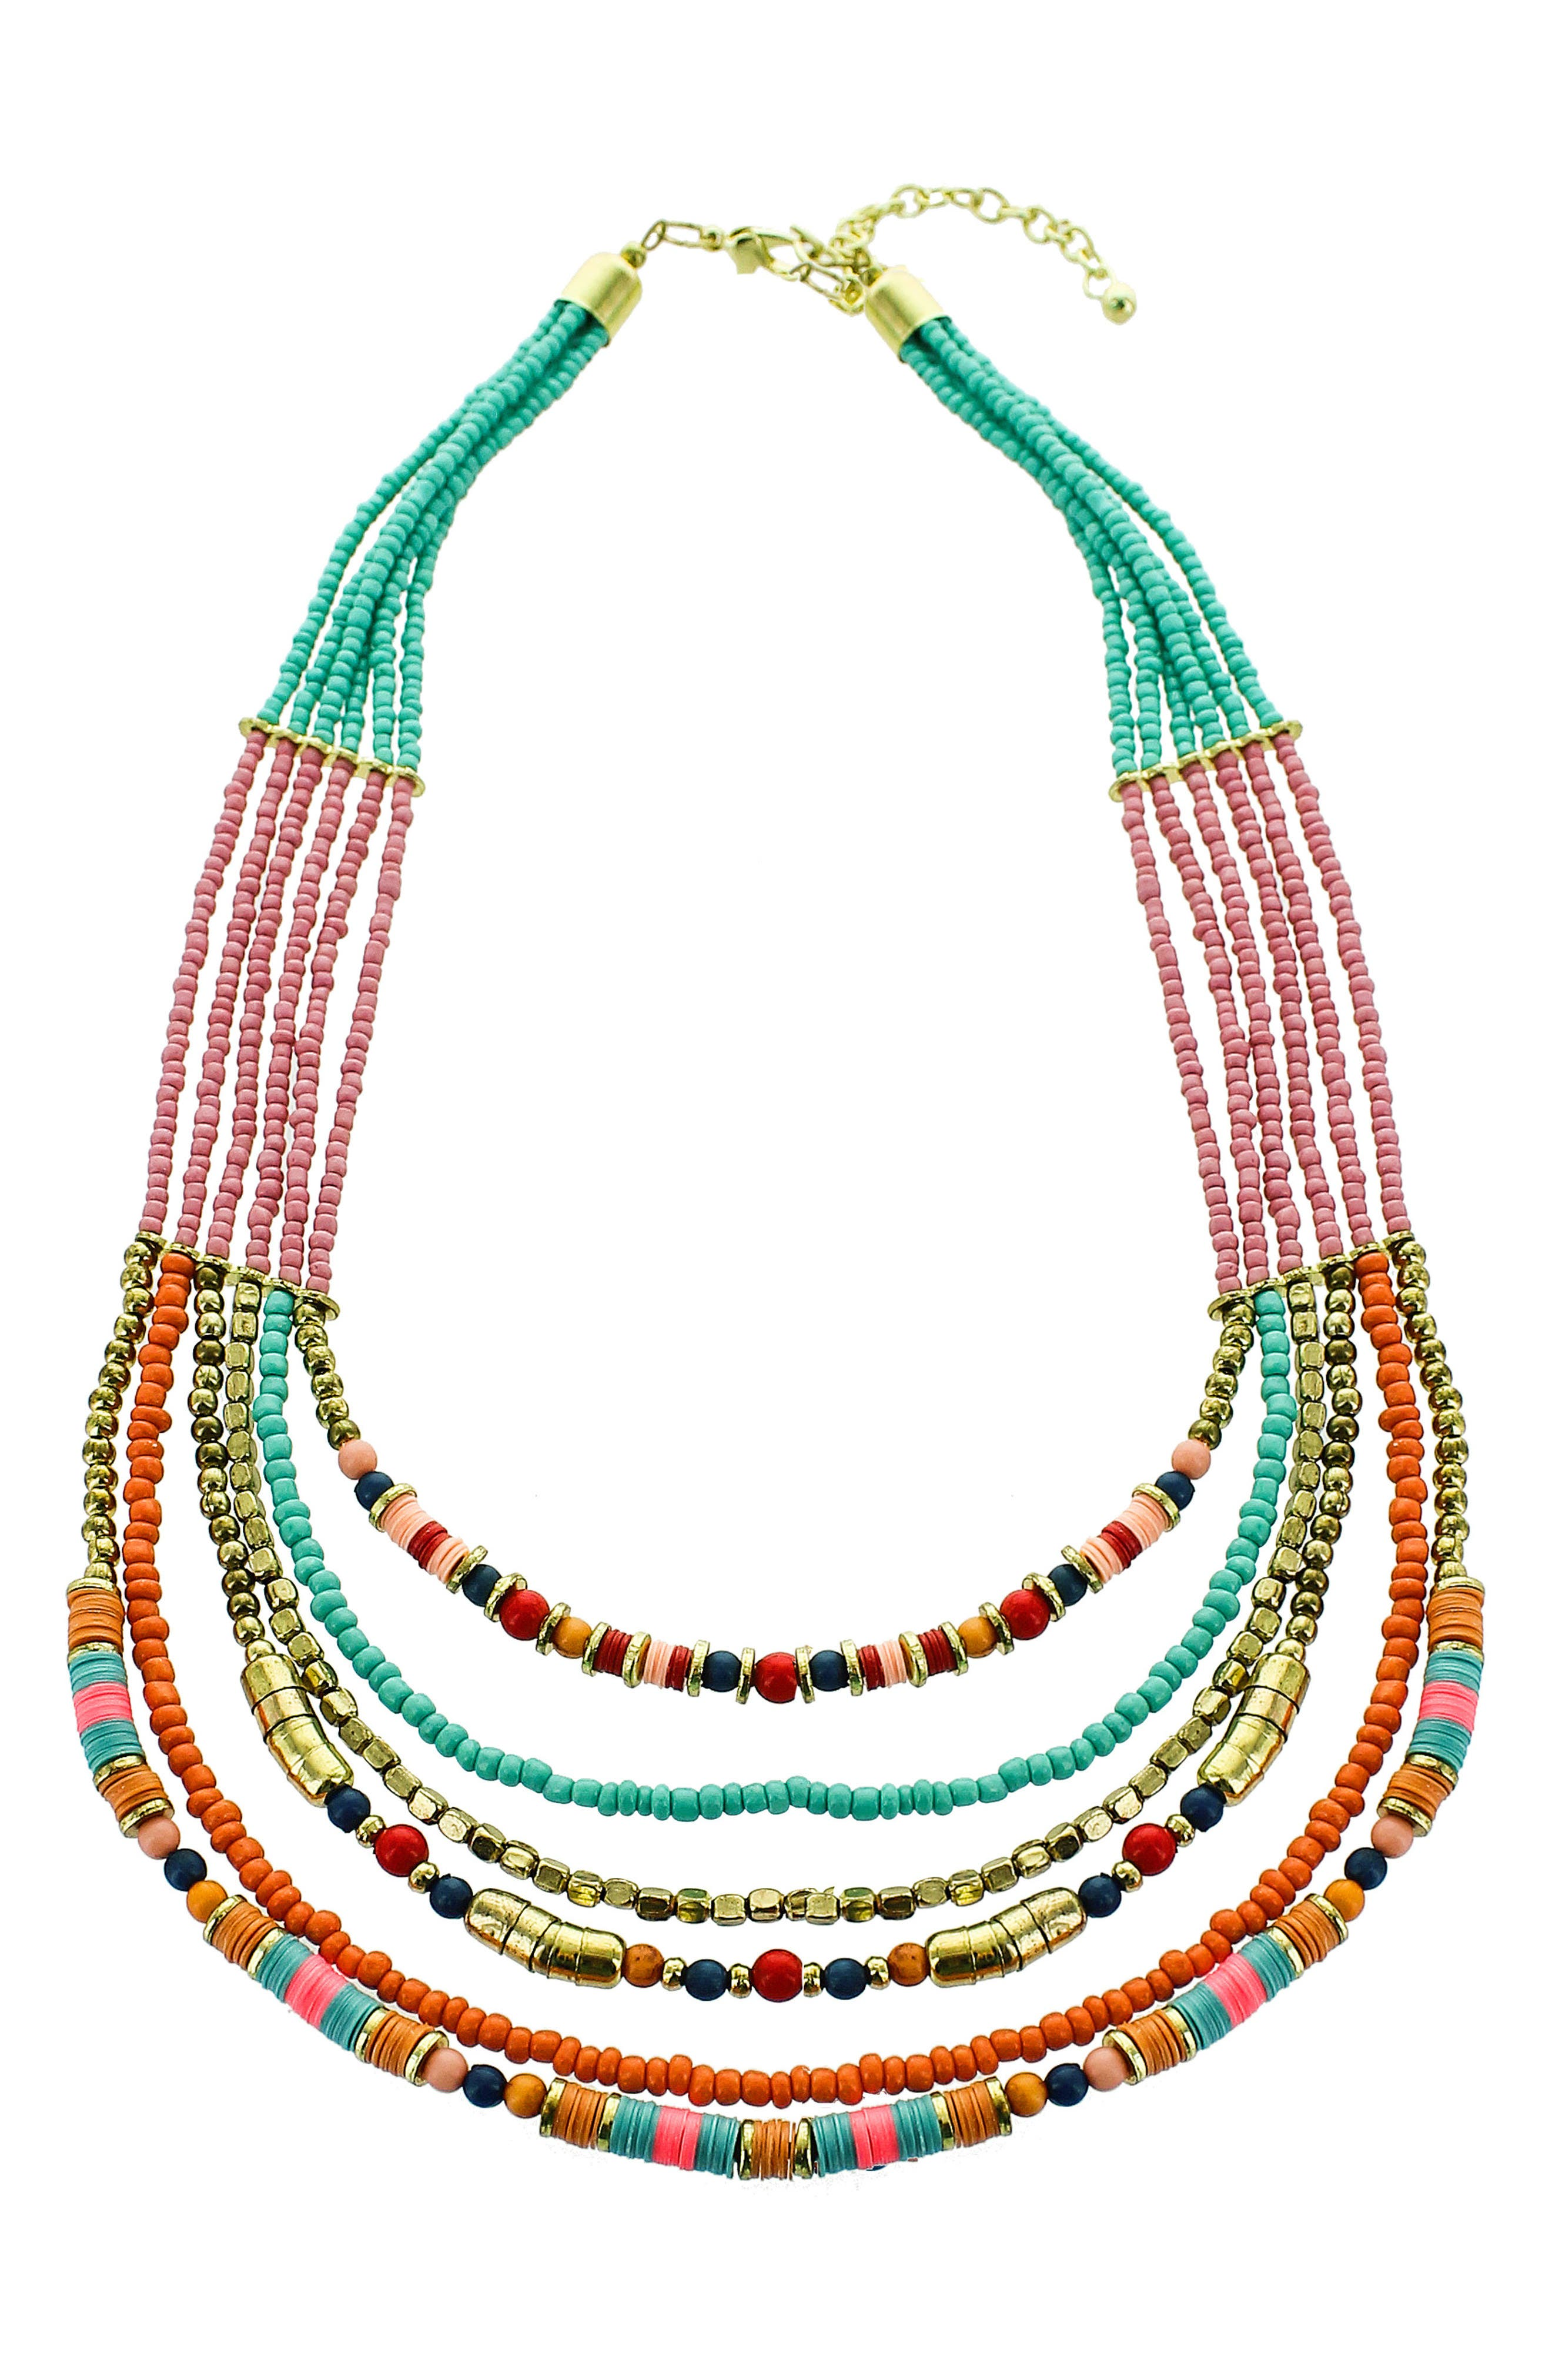 Multistrand Seed Bead Necklace,                             Main thumbnail 1, color,                             400